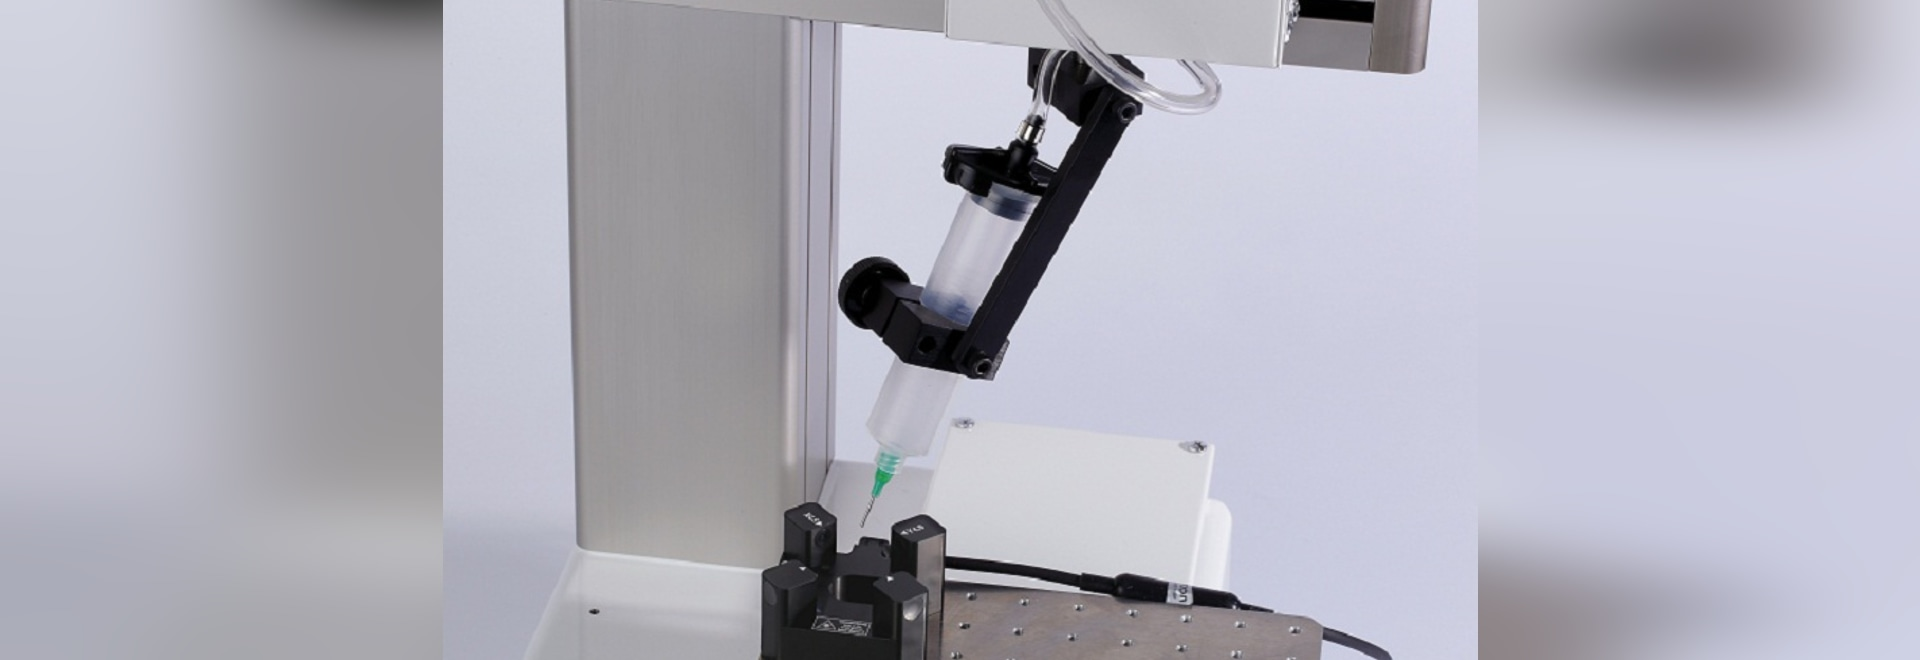 Your robot dispenses in the right direction with Janome's 4 axis needle adjuster